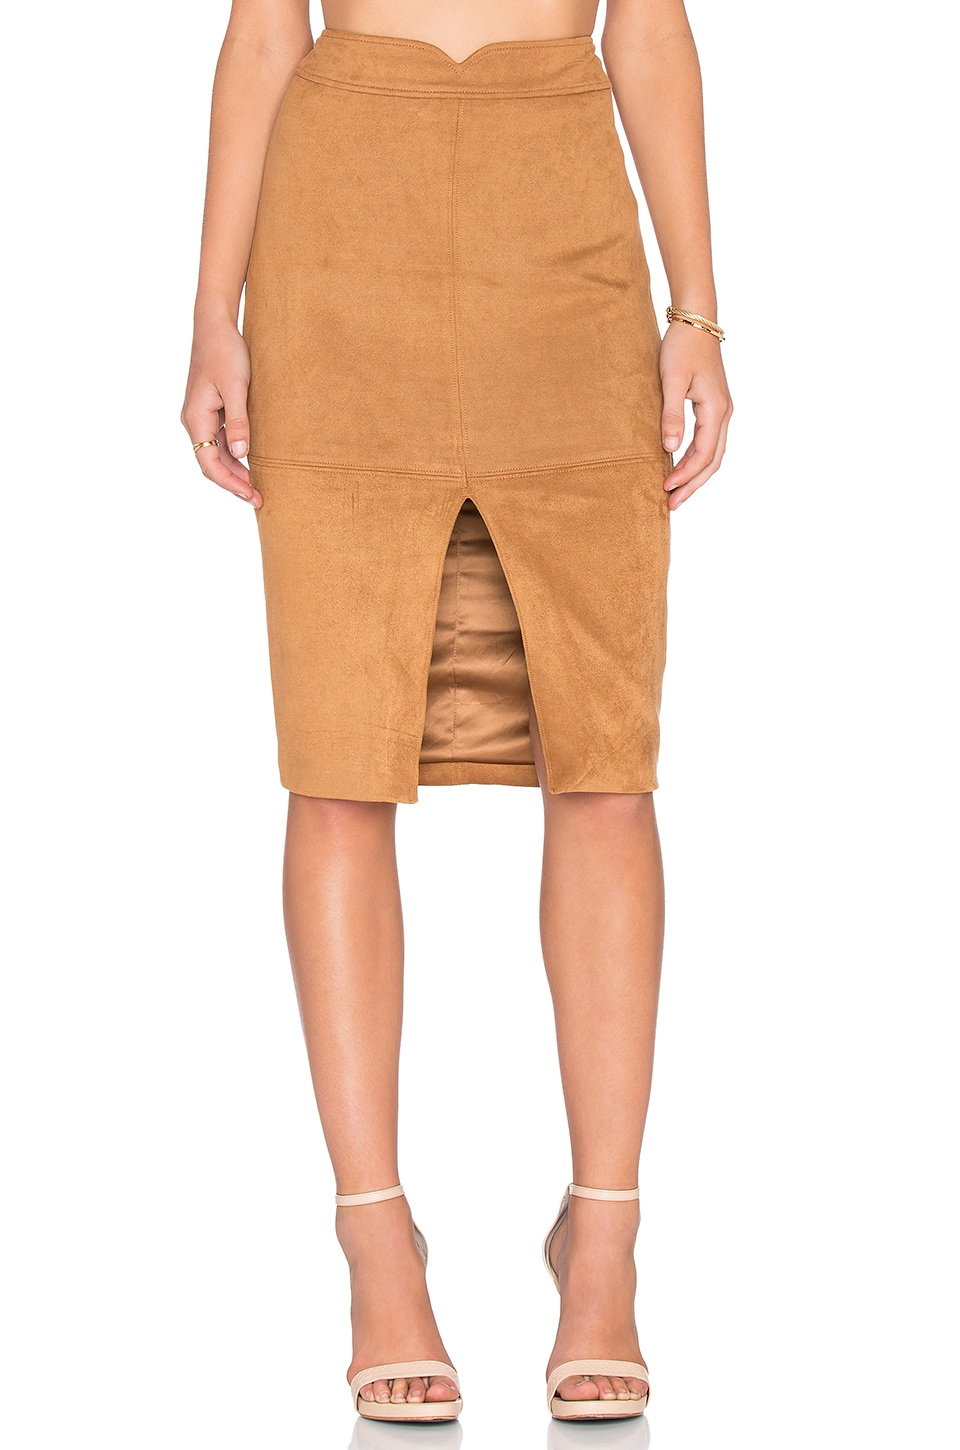 Bardot Sueded Midi Skirt in Cinnamon